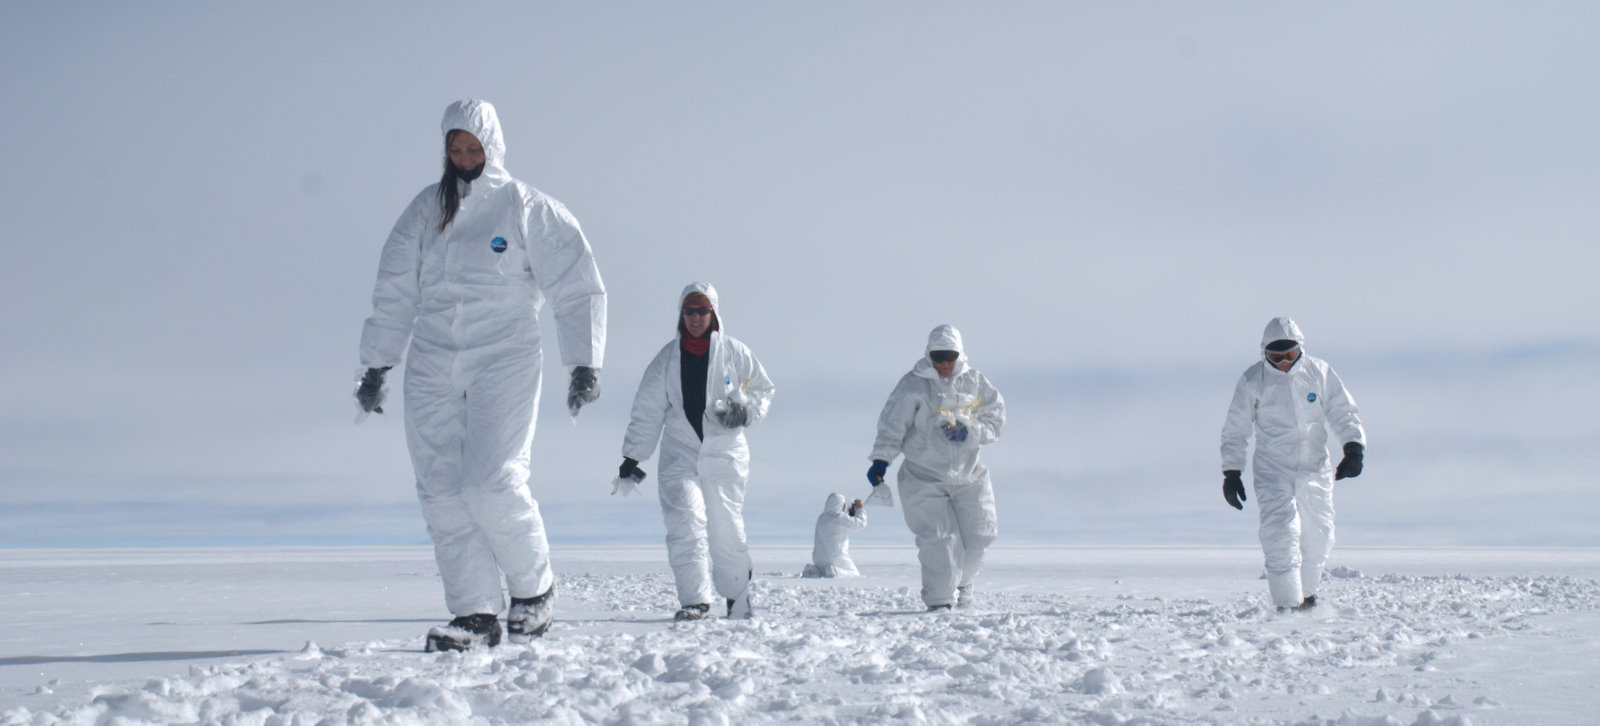 While part of the group collected surface snow samples, donning Tyvek suits to reduce contamination of the snow samples which are analyzed for dust and chemical pollution. . .